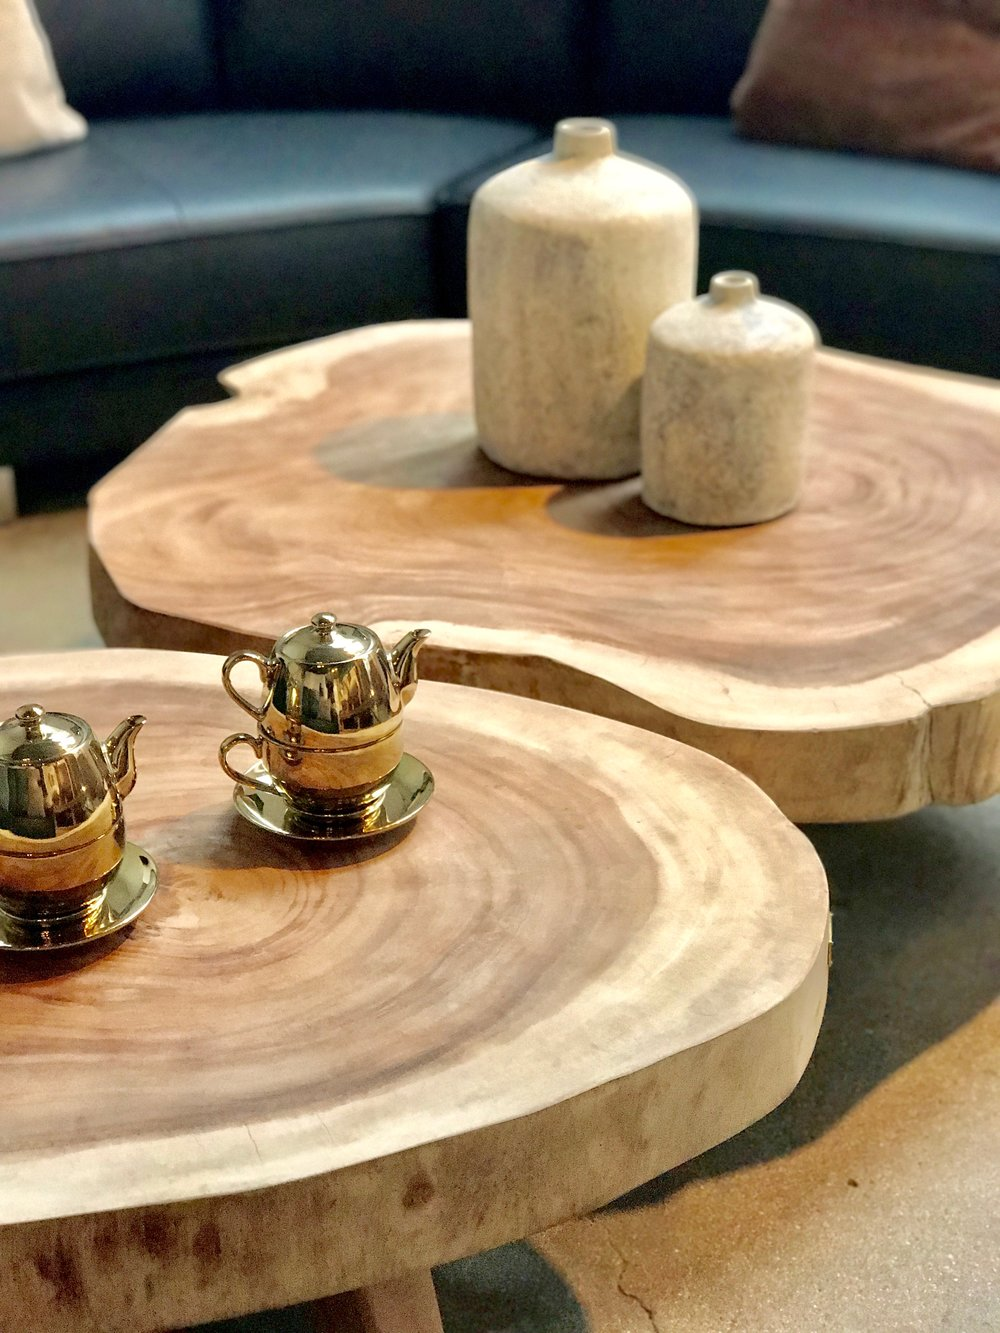 coffee tables. live edge single slab slice wood coffee tabesBlue Moon Furniture Store, Winnipeg, Manitoba, Canada. Modern, Contemporary cool luxury furniture. Local design.jpg